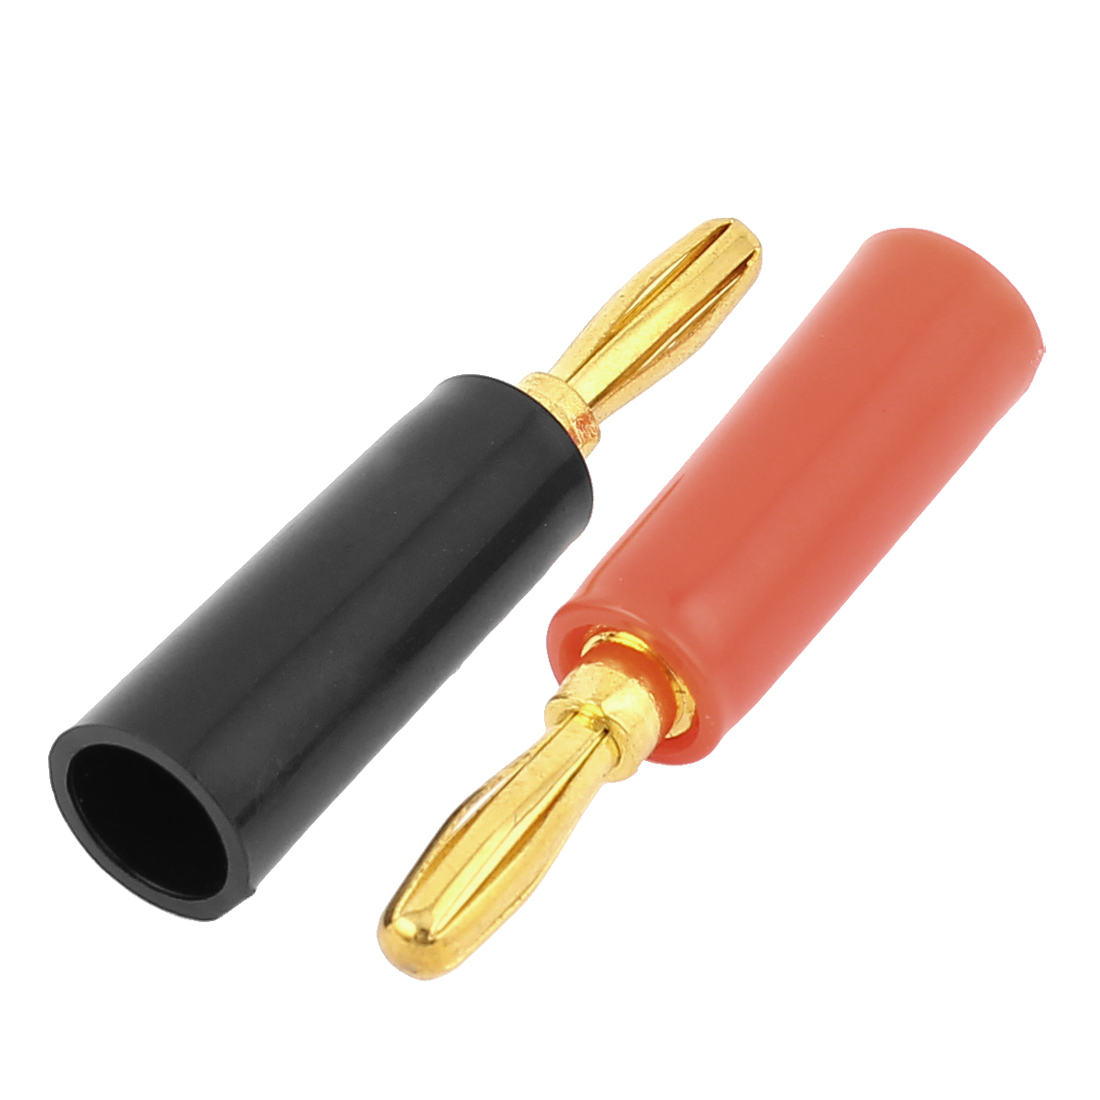 2 Pcs Gold Plate Connector 47mm Length Black And Red Banana Adapter